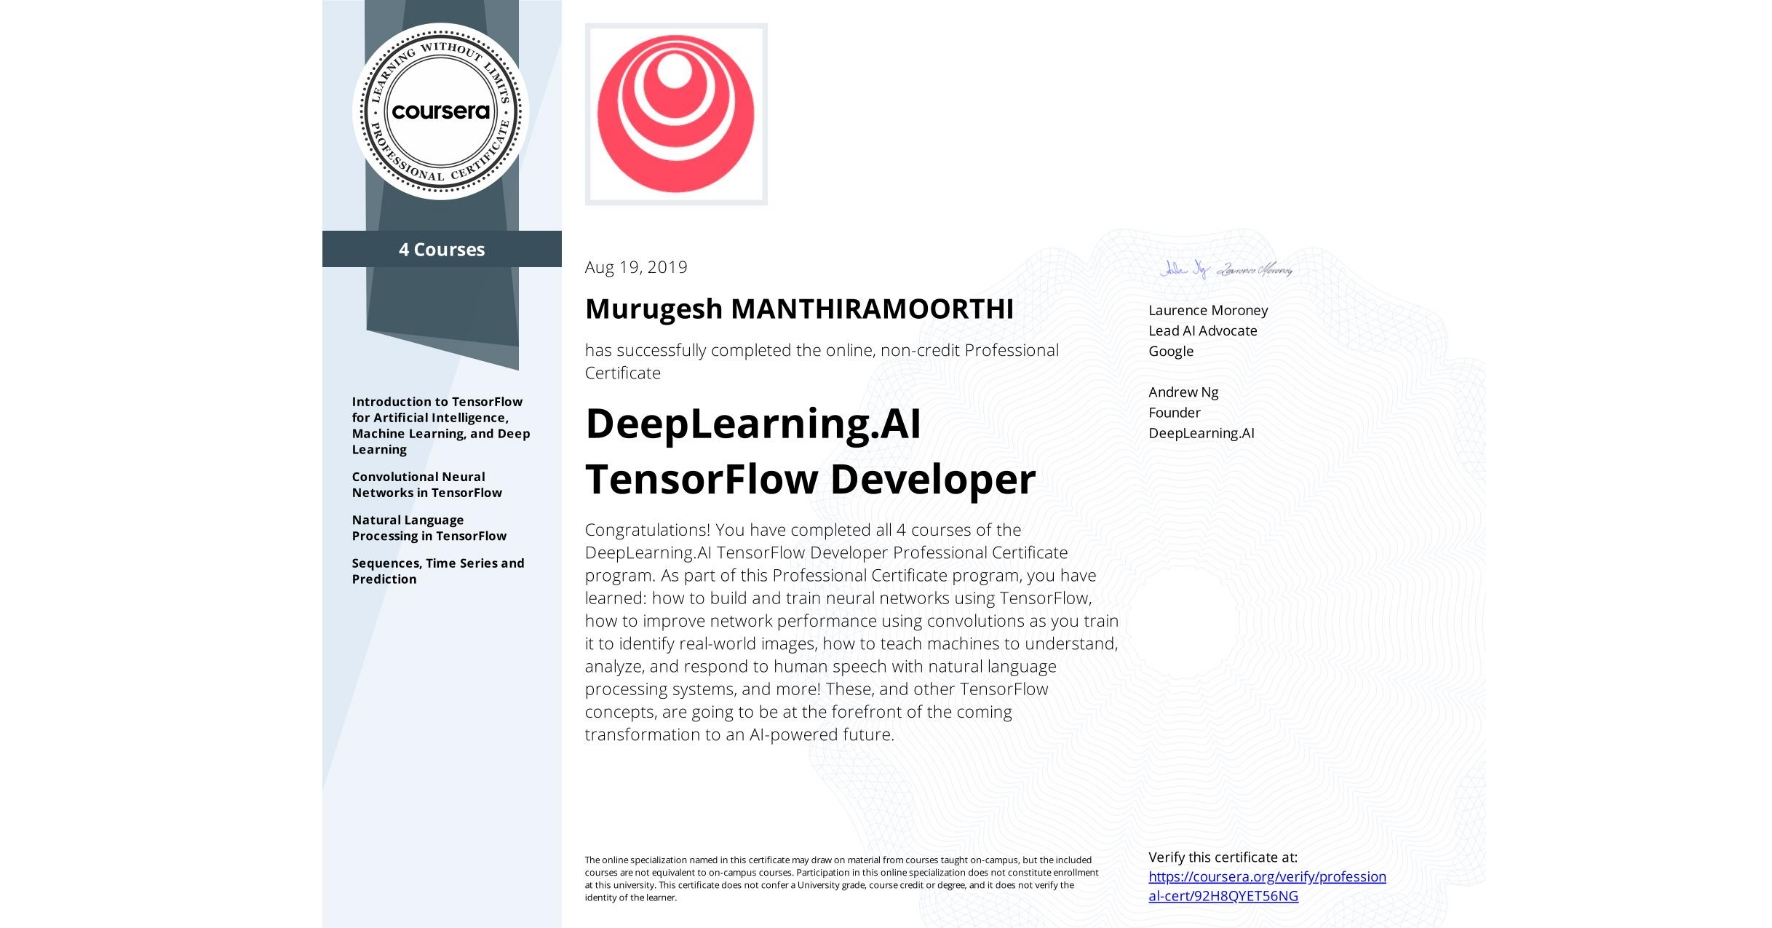 View certificate for Murugesh Manthiramoorthi, DeepLearning.AI TensorFlow Developer, offered through Coursera. Congratulations! You have completed all 4 courses of the DeepLearning.AI TensorFlow Developer Professional Certificate program.   As part of this Professional Certificate program, you have learned: how to build and train neural networks using TensorFlow, how to improve network performance using convolutions as you train it to identify real-world images, how to teach machines to understand, analyze, and respond to human speech with natural language processing systems, and more!  These, and other TensorFlow concepts, are going to be at the forefront of the coming transformation to an AI-powered future.